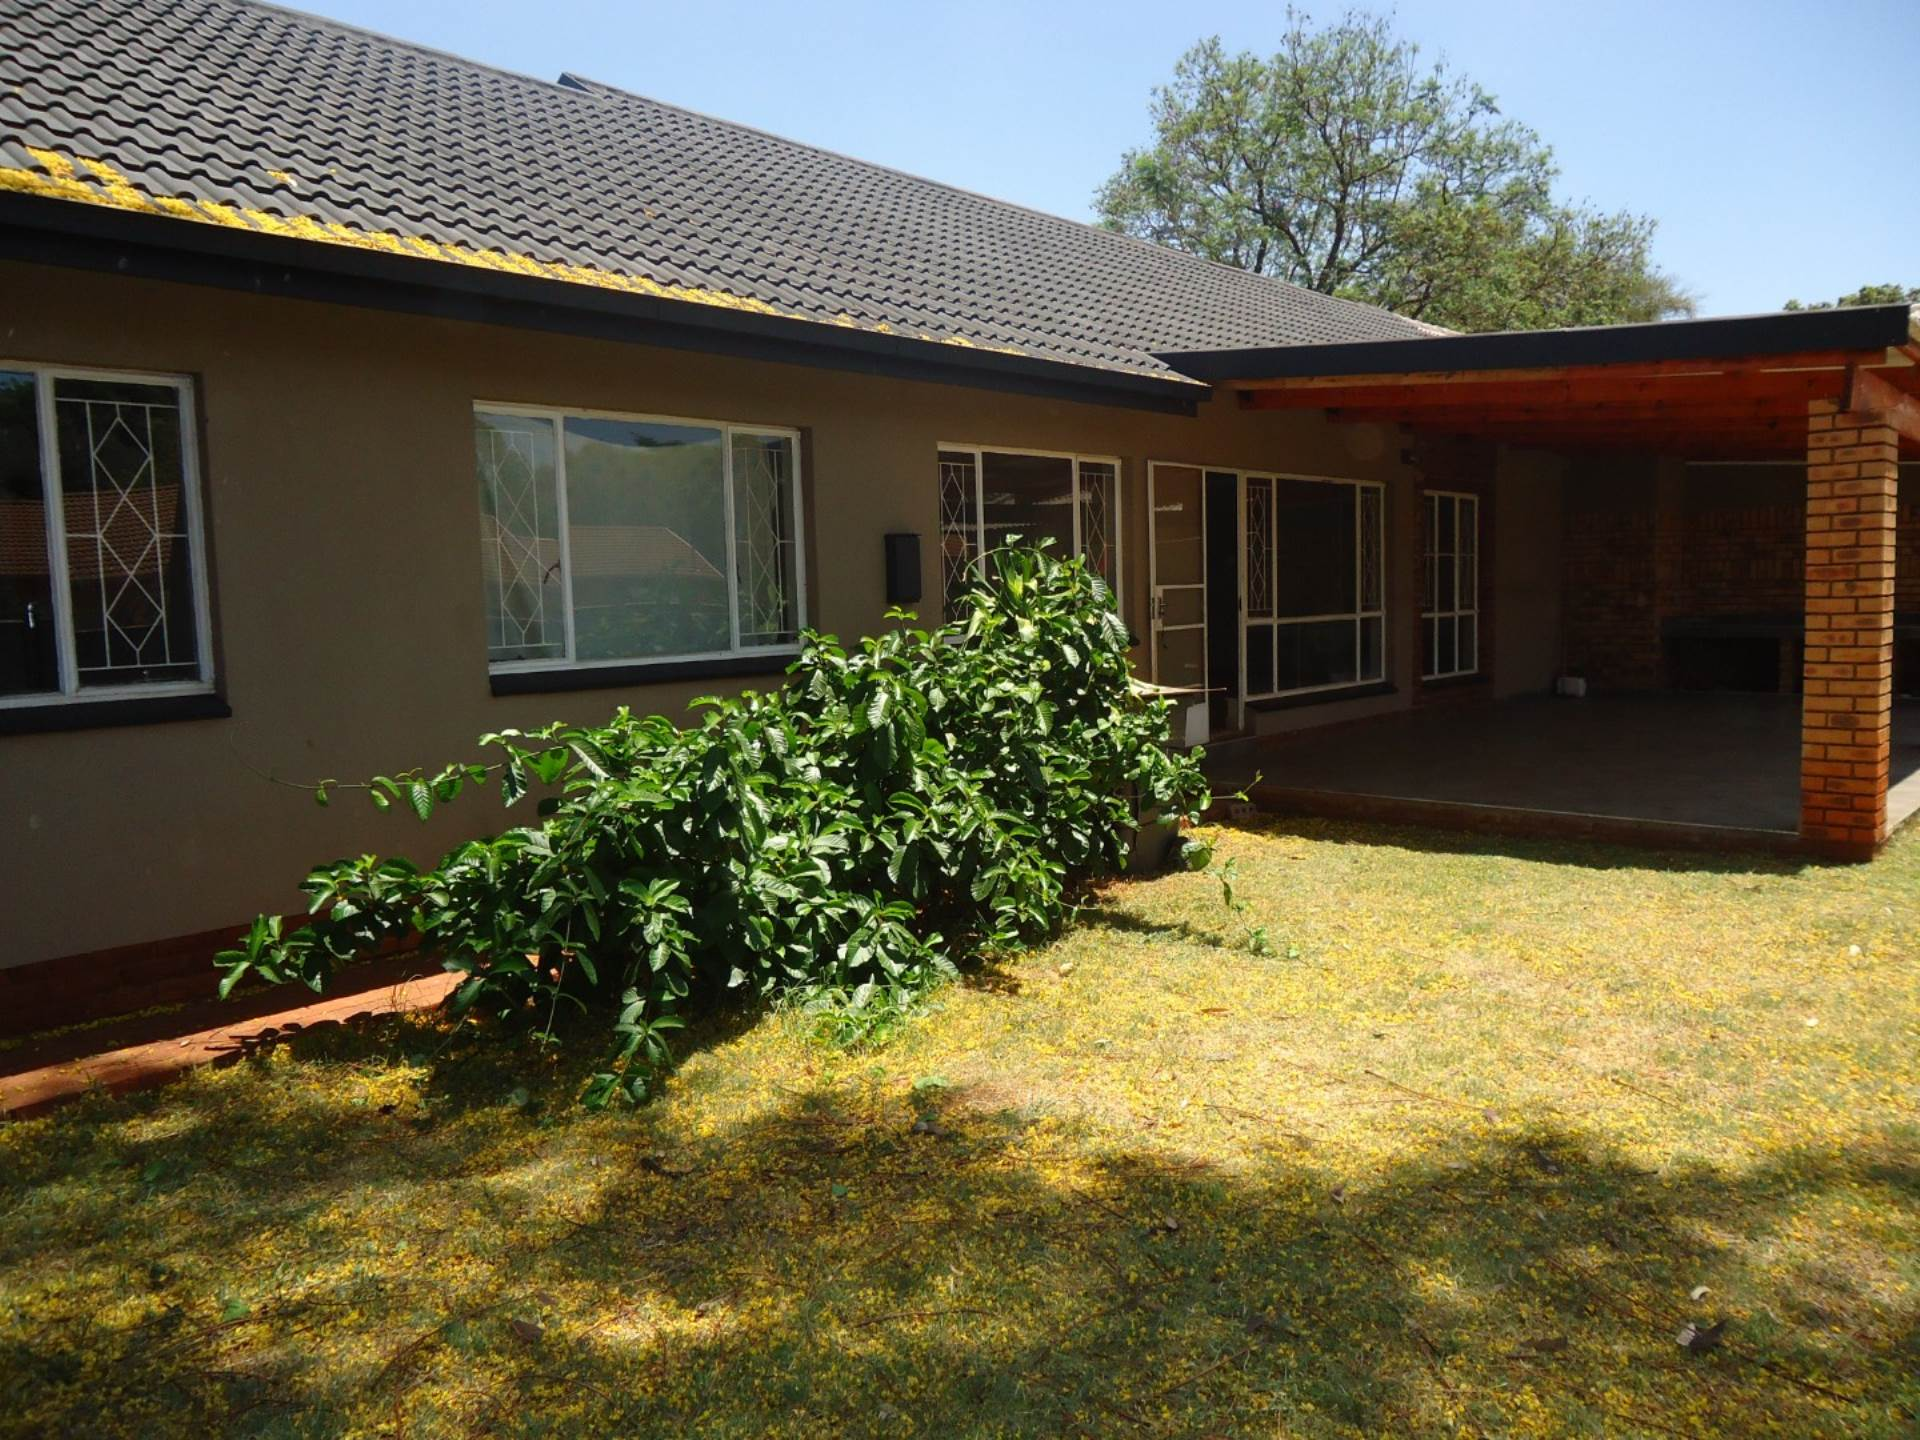 3 BedroomCluster For Sale In The Orchards